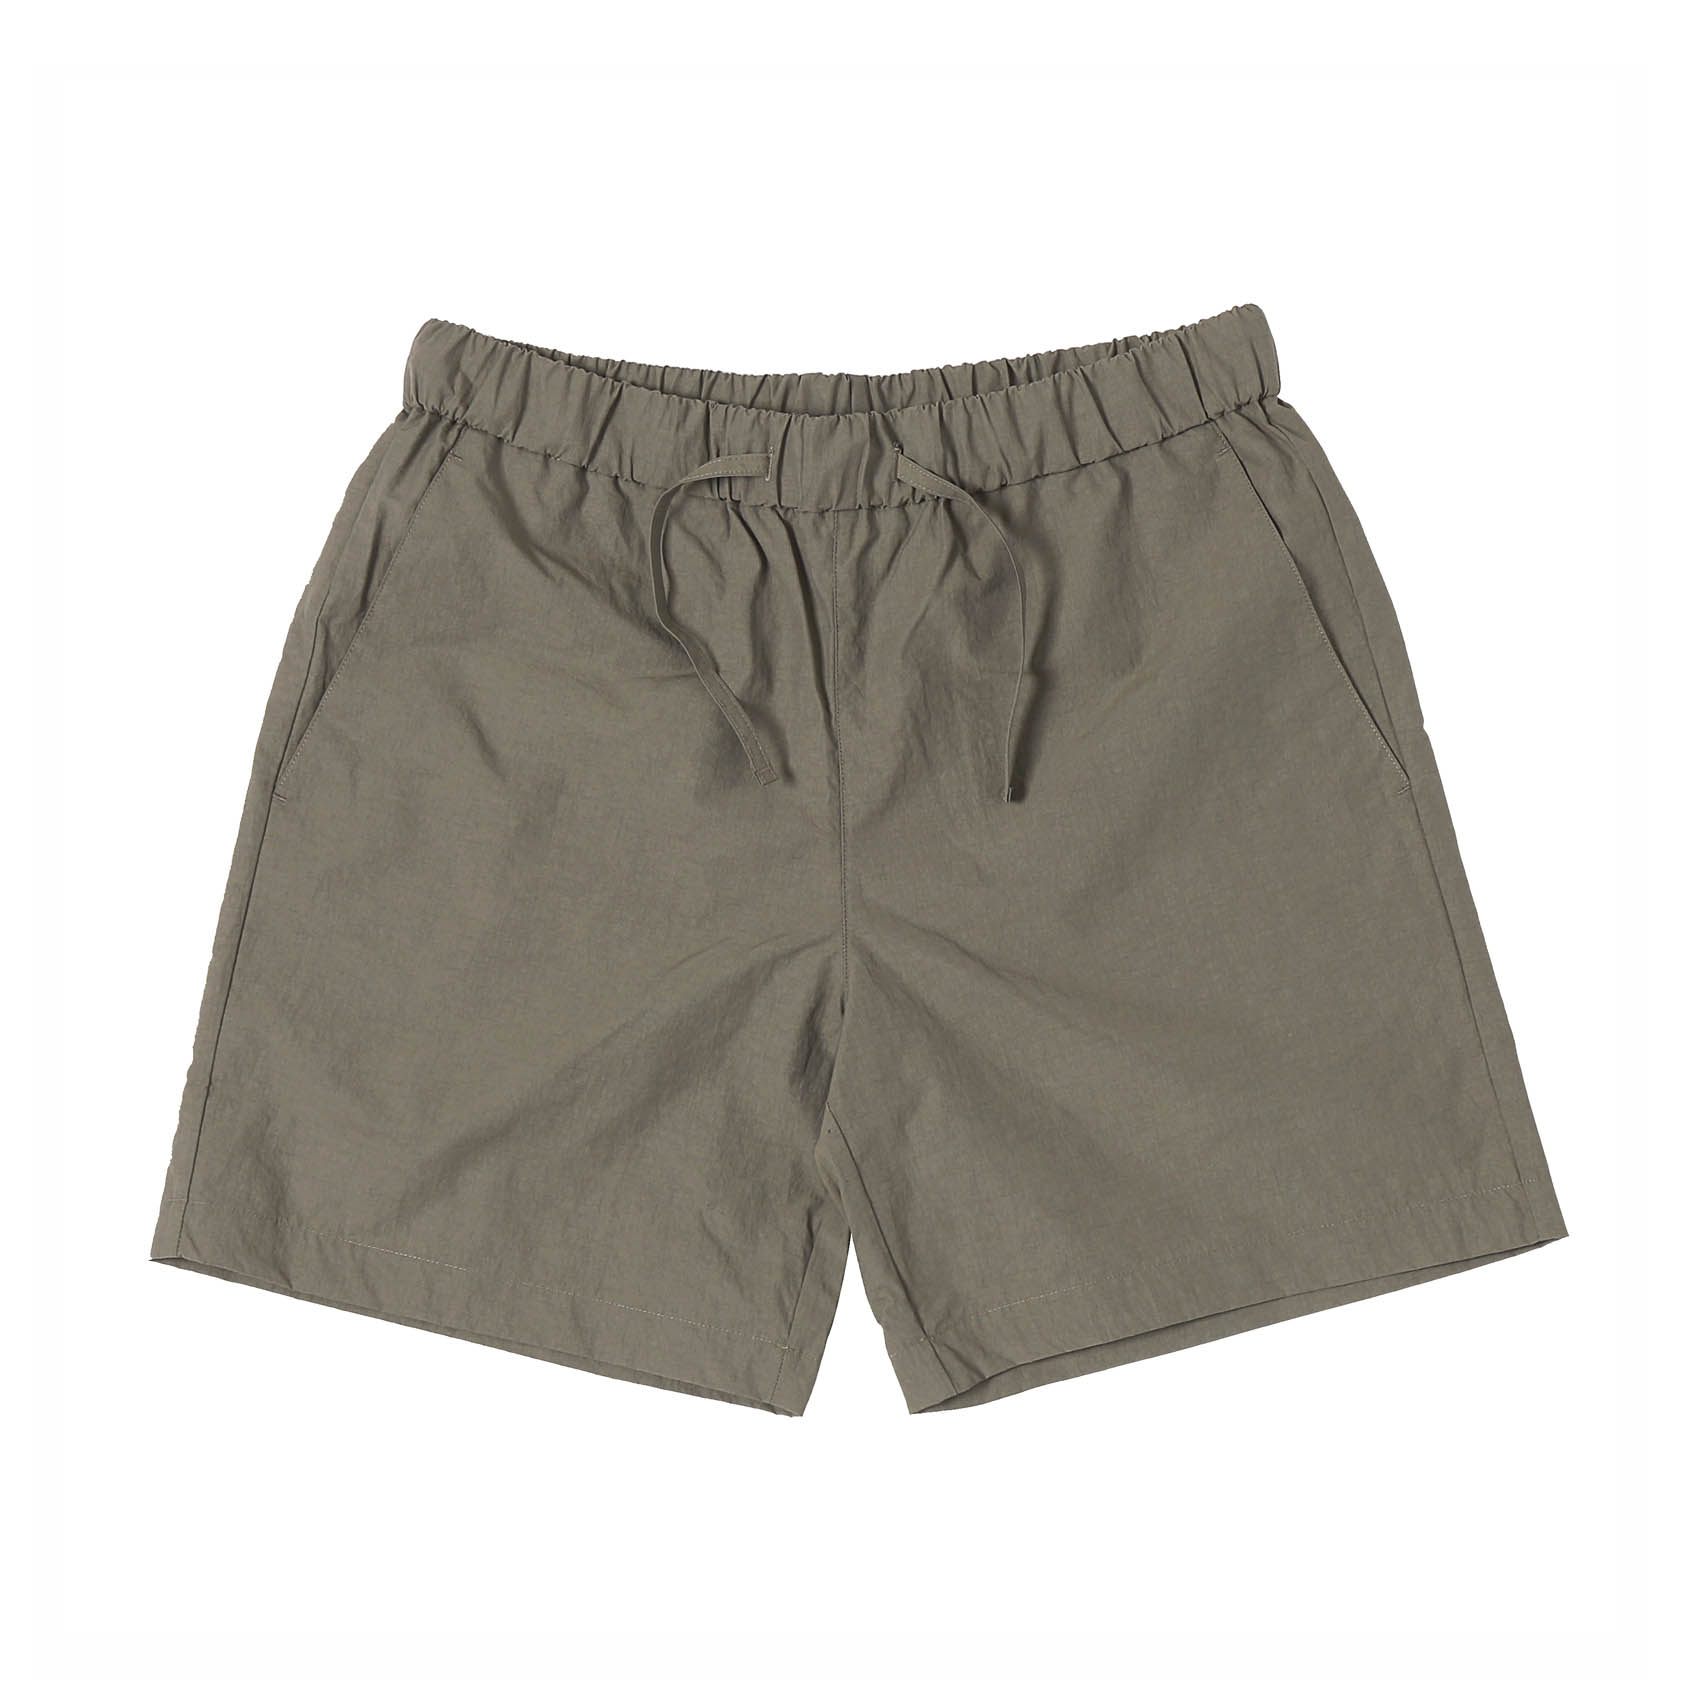 SUMMER ESSENTIAL SHORTS - CHARCOAL BROWN